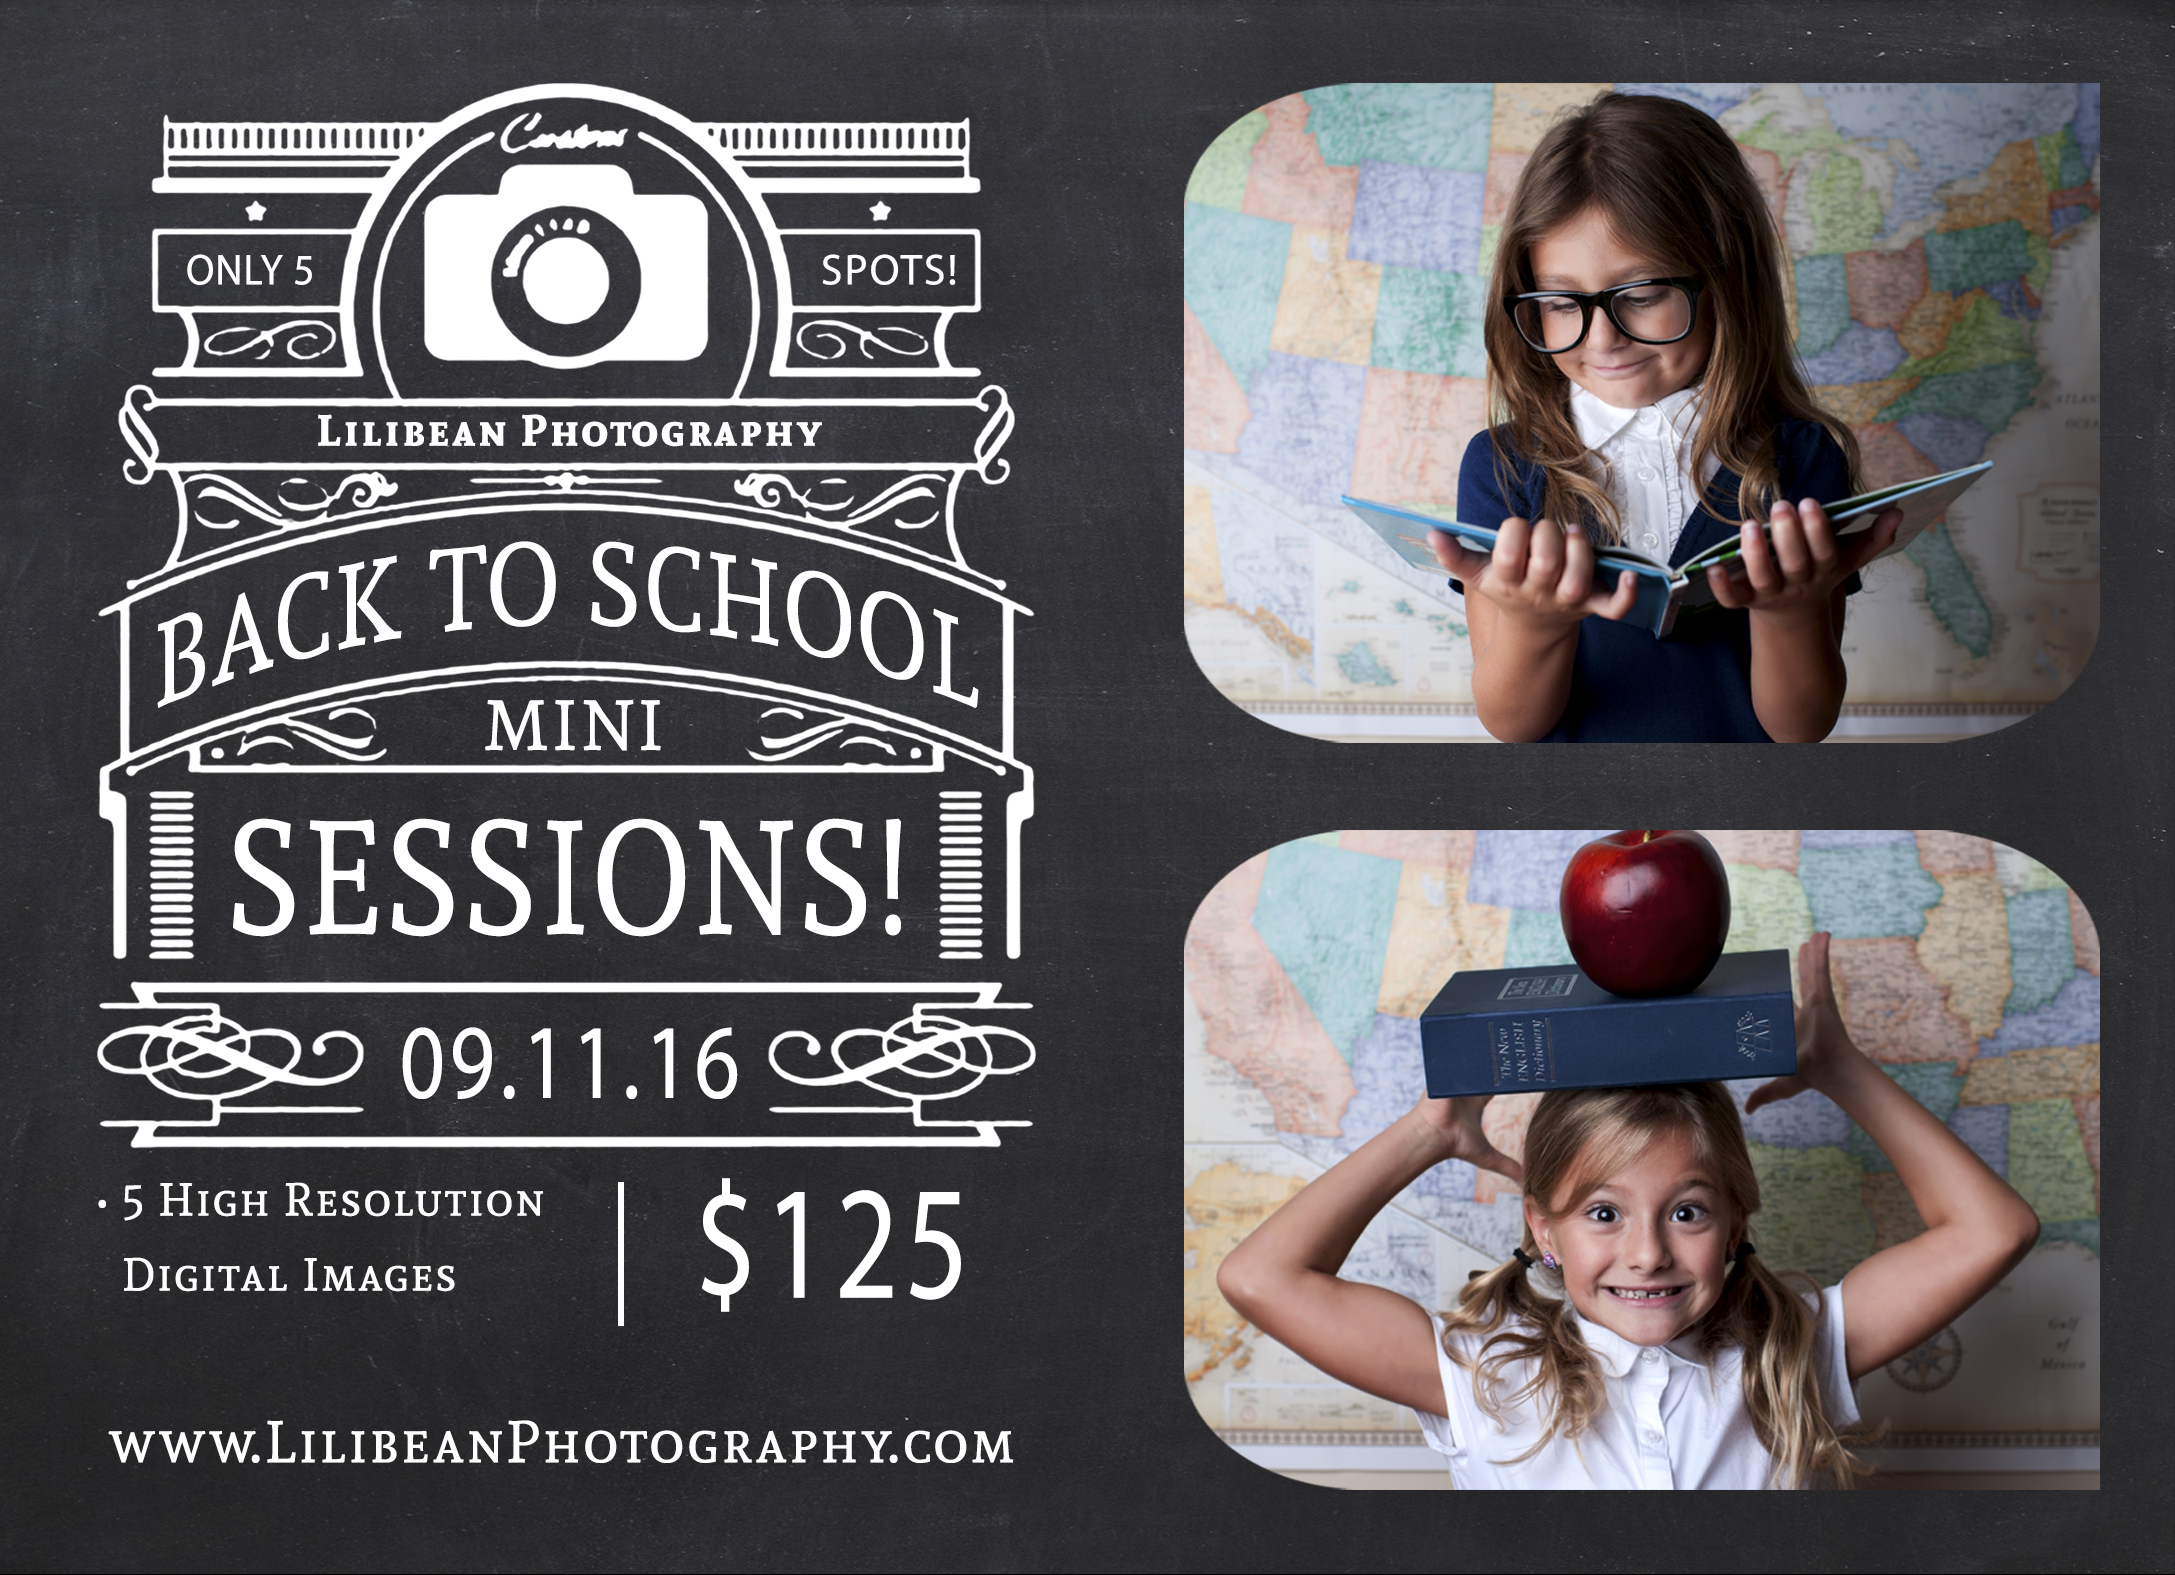 south florida back to school mini sessions miami photography fall 2016